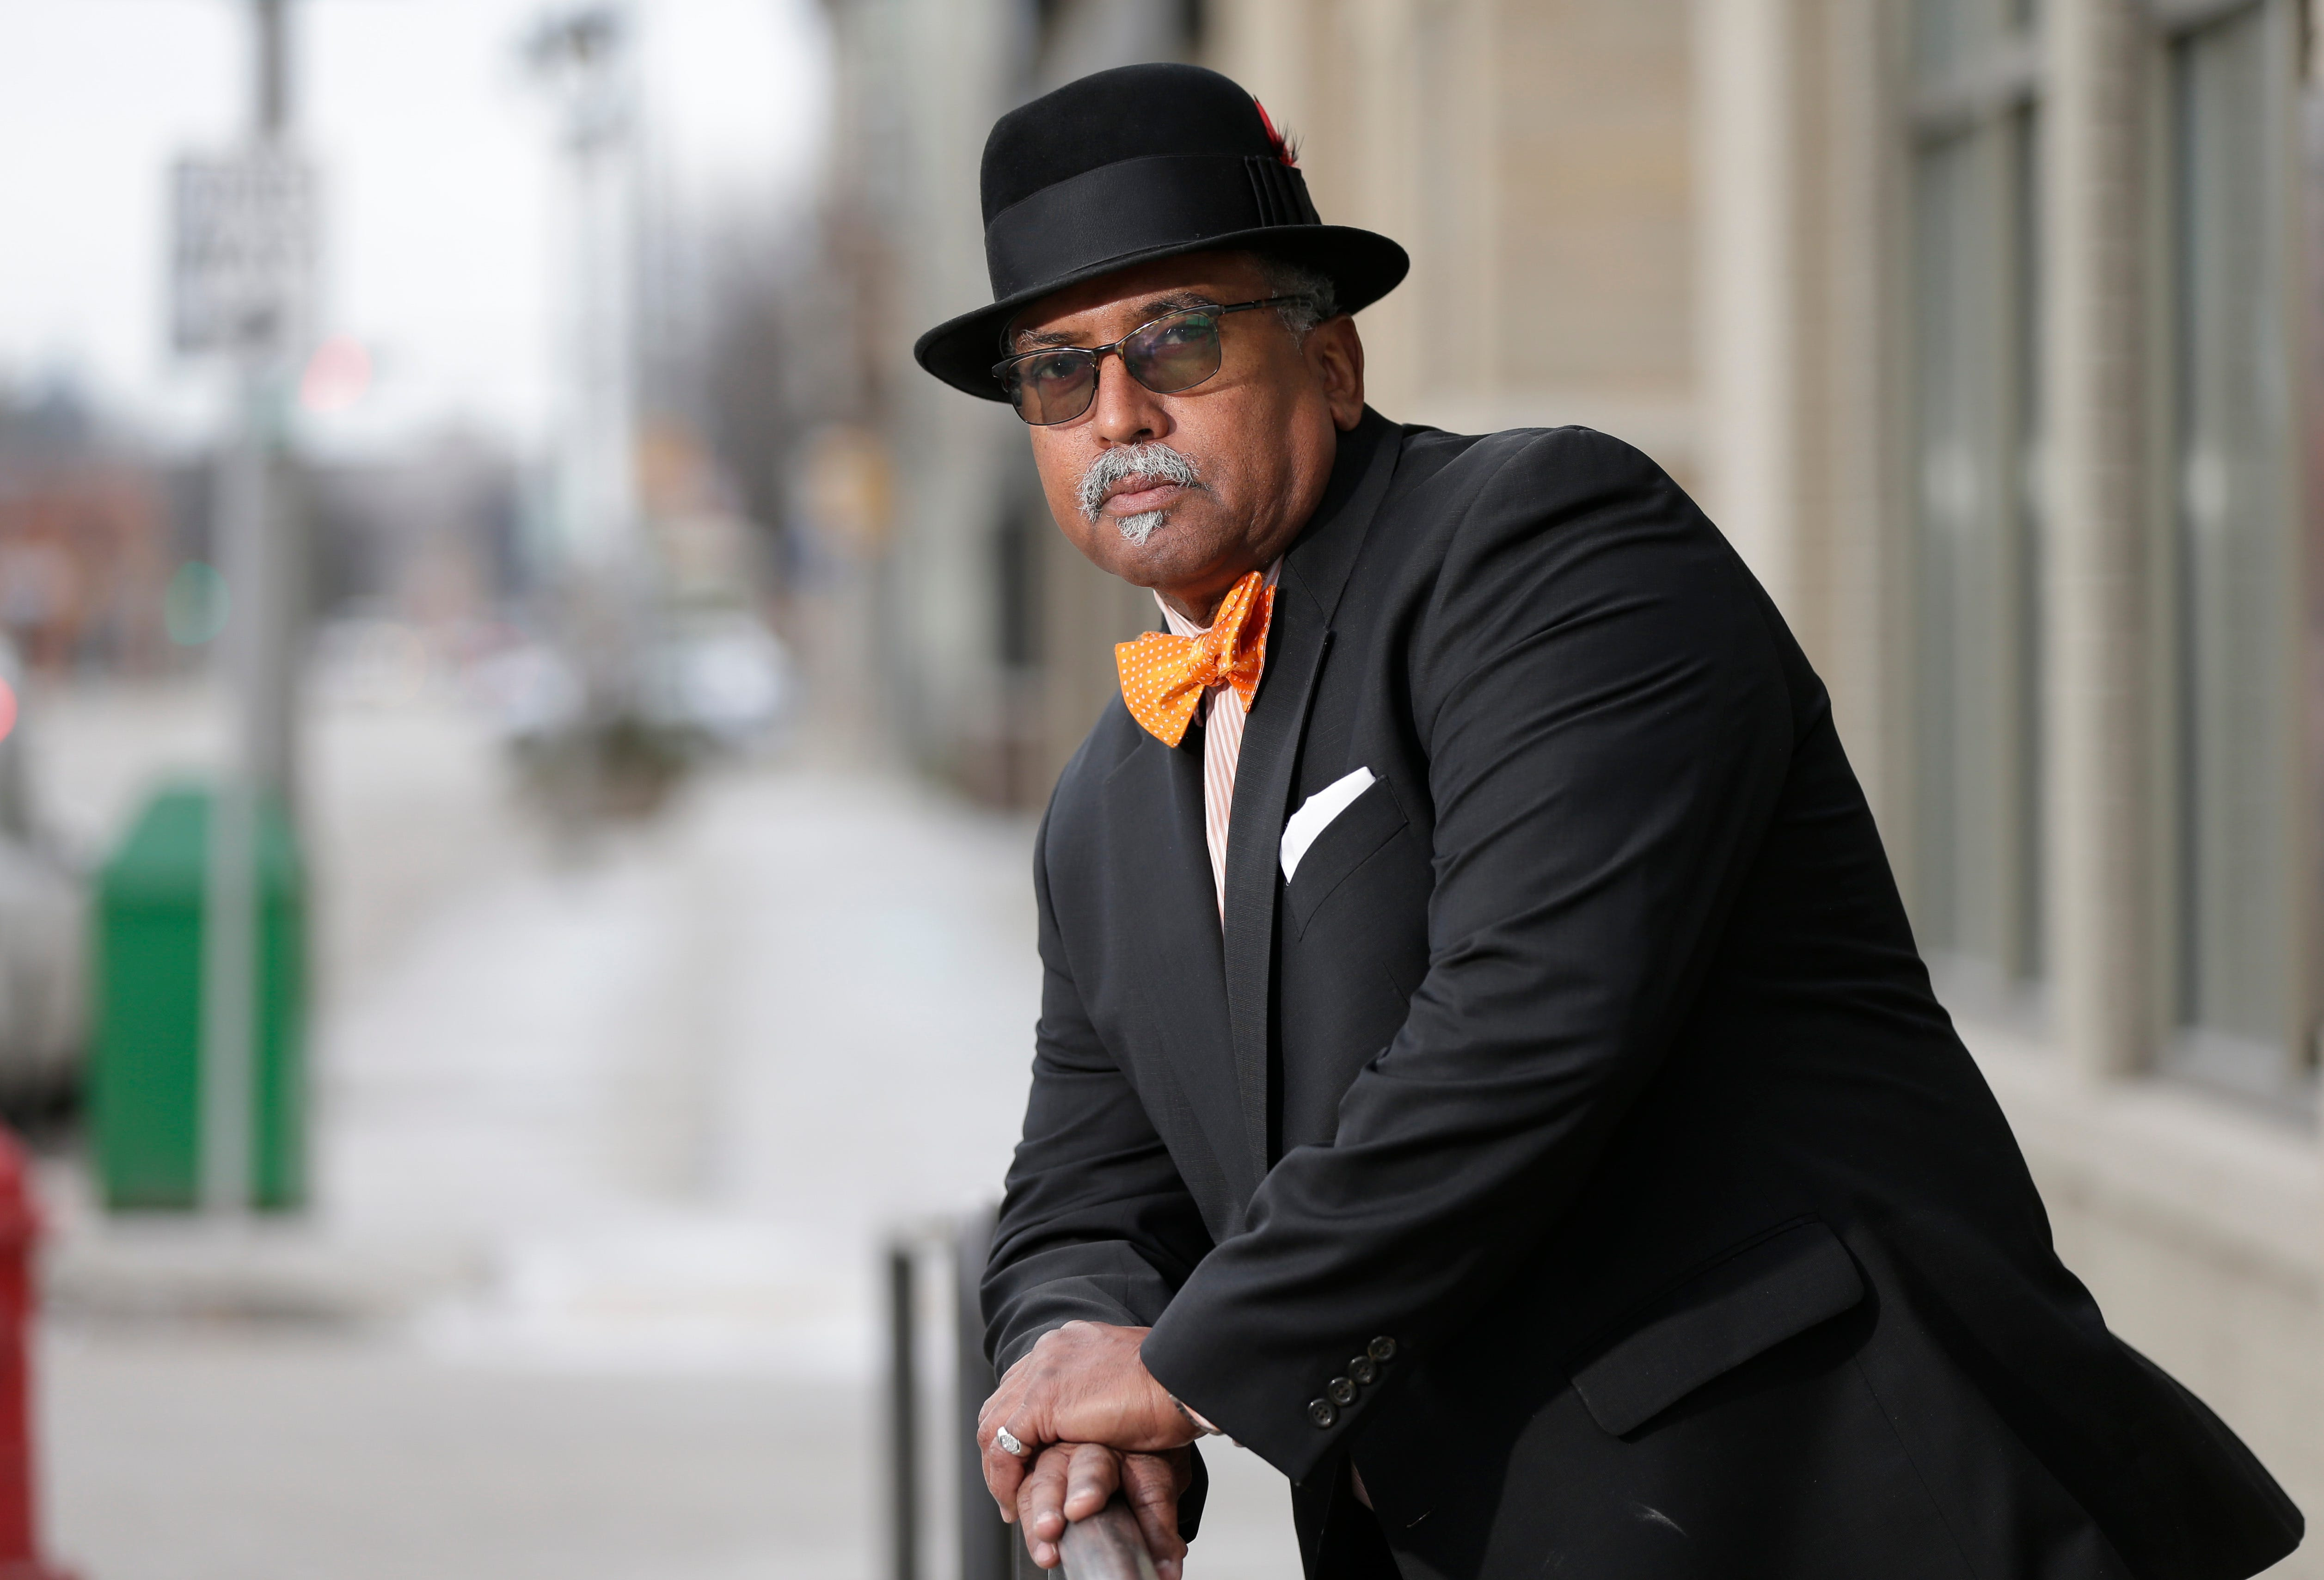 NAACP President Fred Royal outside the NAACP headquarters located at 2745 Dr. Martin Luther King Dr. in Milwaukee on Wednesday, January 31, 2018.